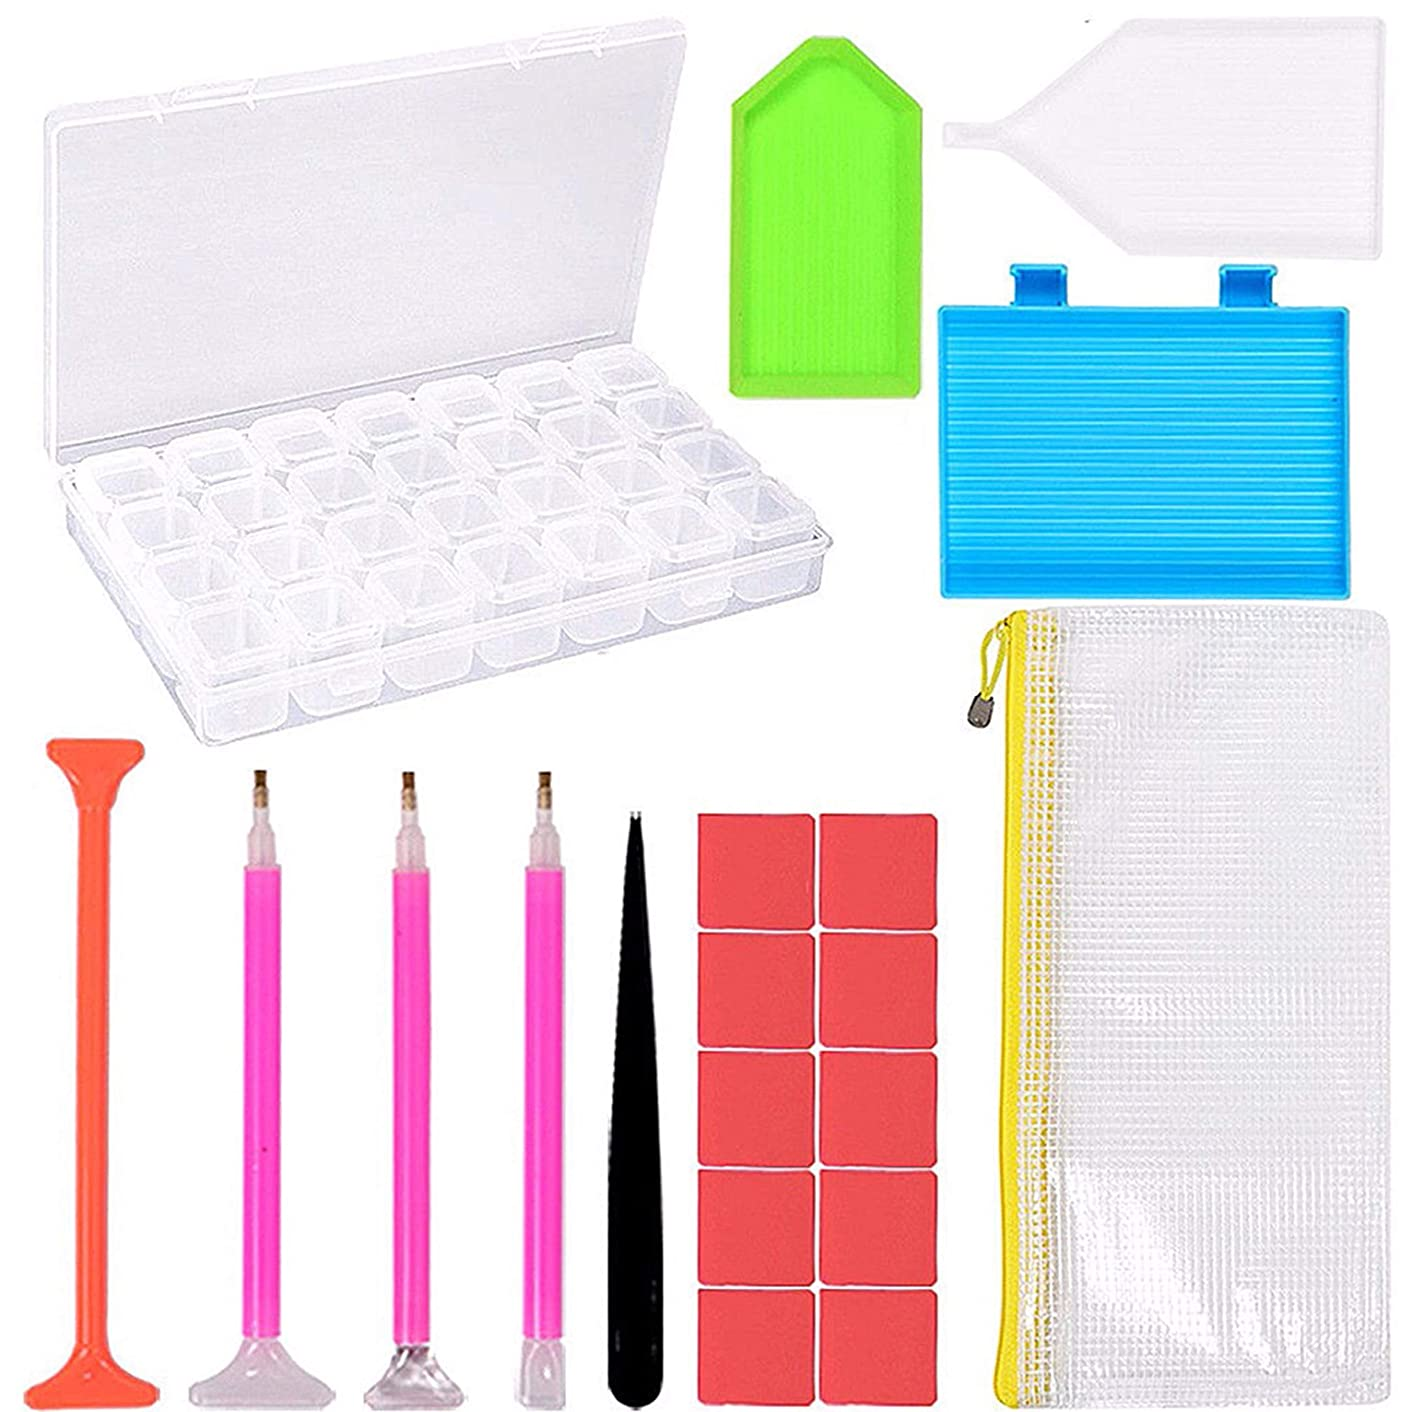 20 Pieces Diamond Painting Tools 5D DIY Diamond Painting Accessories Diamond Cross Stitch Kits with 28 Slots Diamond Embroidery Box for Adults or Kids (20pc Set)